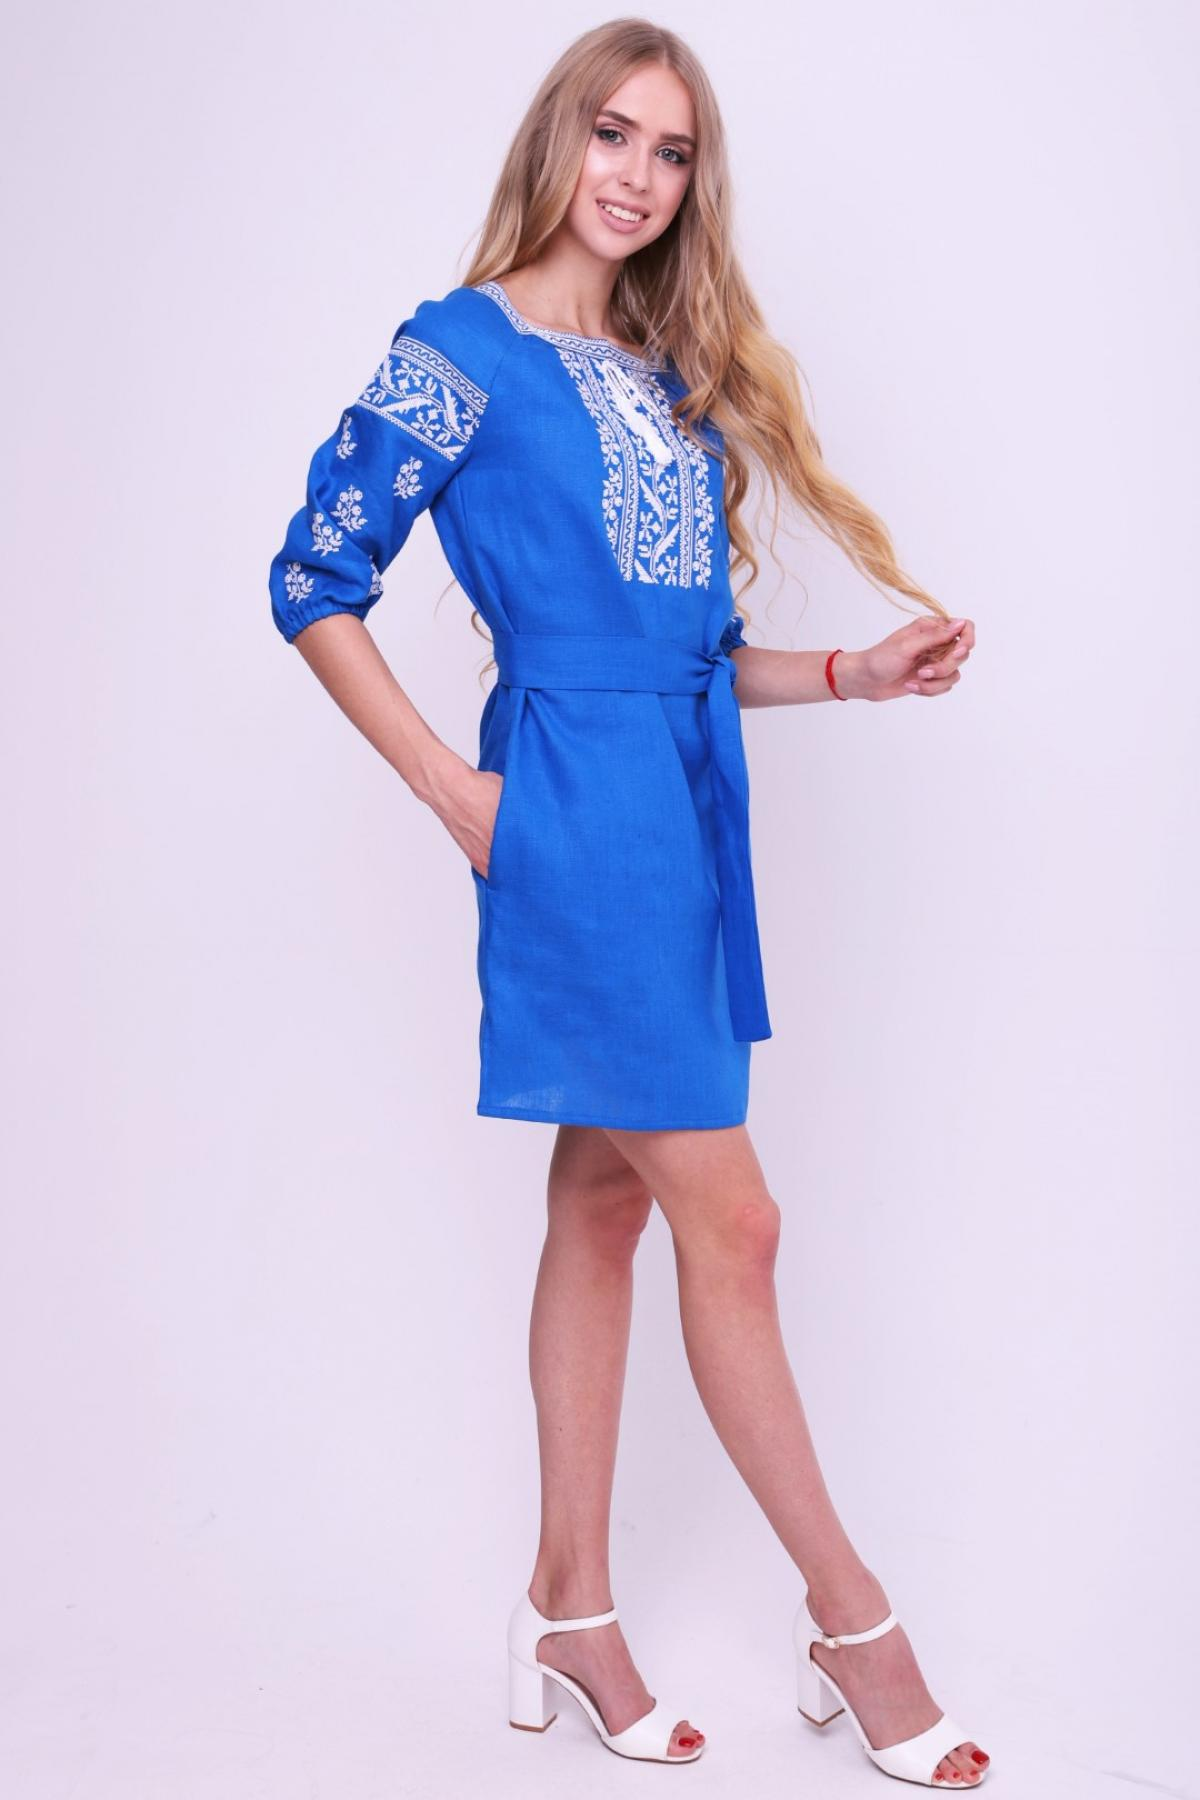 Rich blue dress with contrasting white embroidery. Photo №3. | Narodnyi dim Ukraine